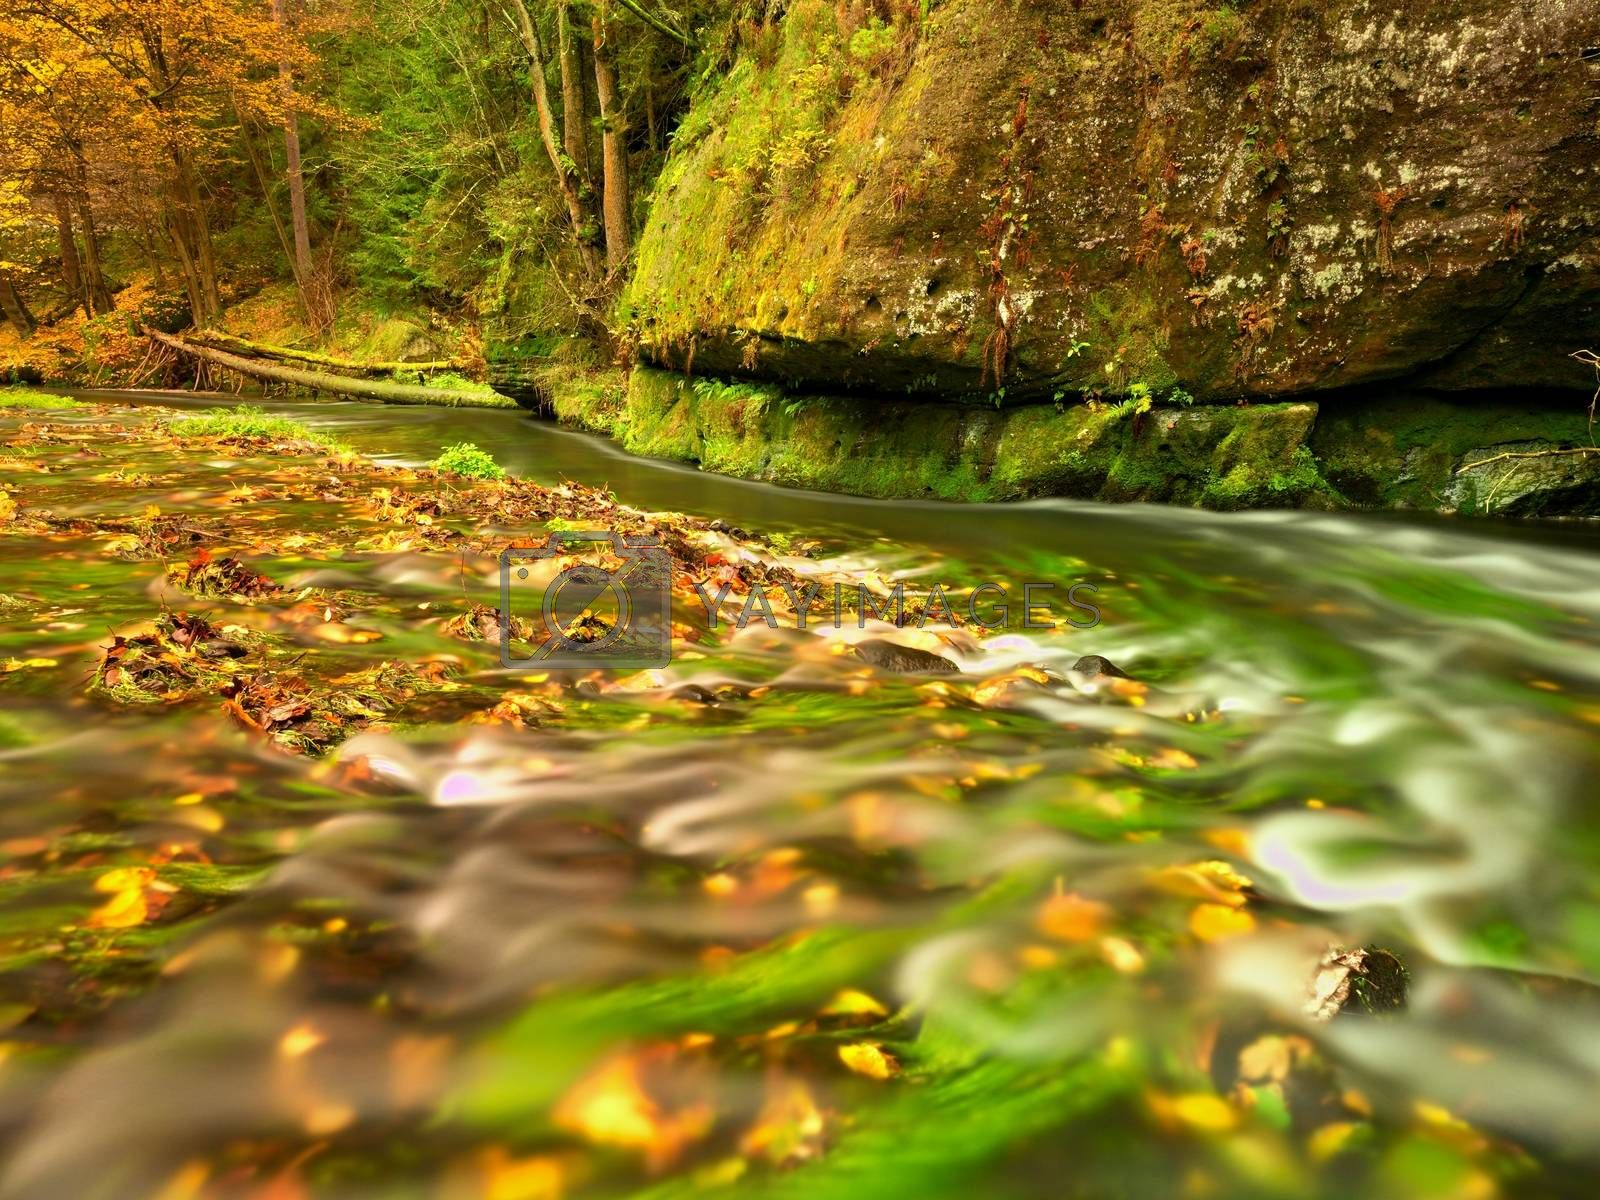 Fall season at mountain river. Green algae in  water, colorful autumn  leaves. Mossy boulders on river bank. Autumn colors.